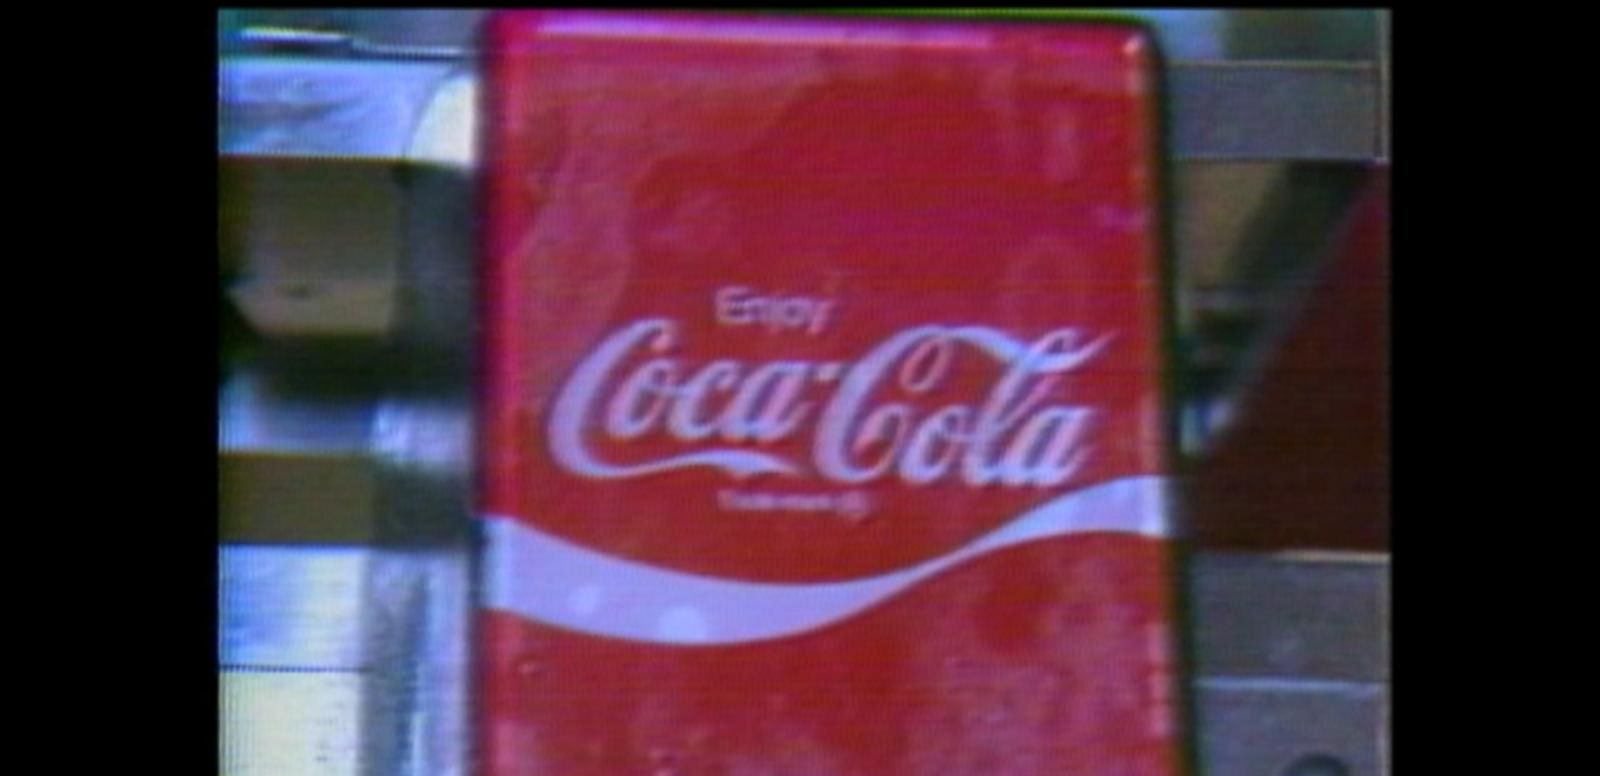 VIDEO: Coca-Cola returned to its 99-year-old formula after the sweeter reformulation of Coke failed to catch on with consumers.